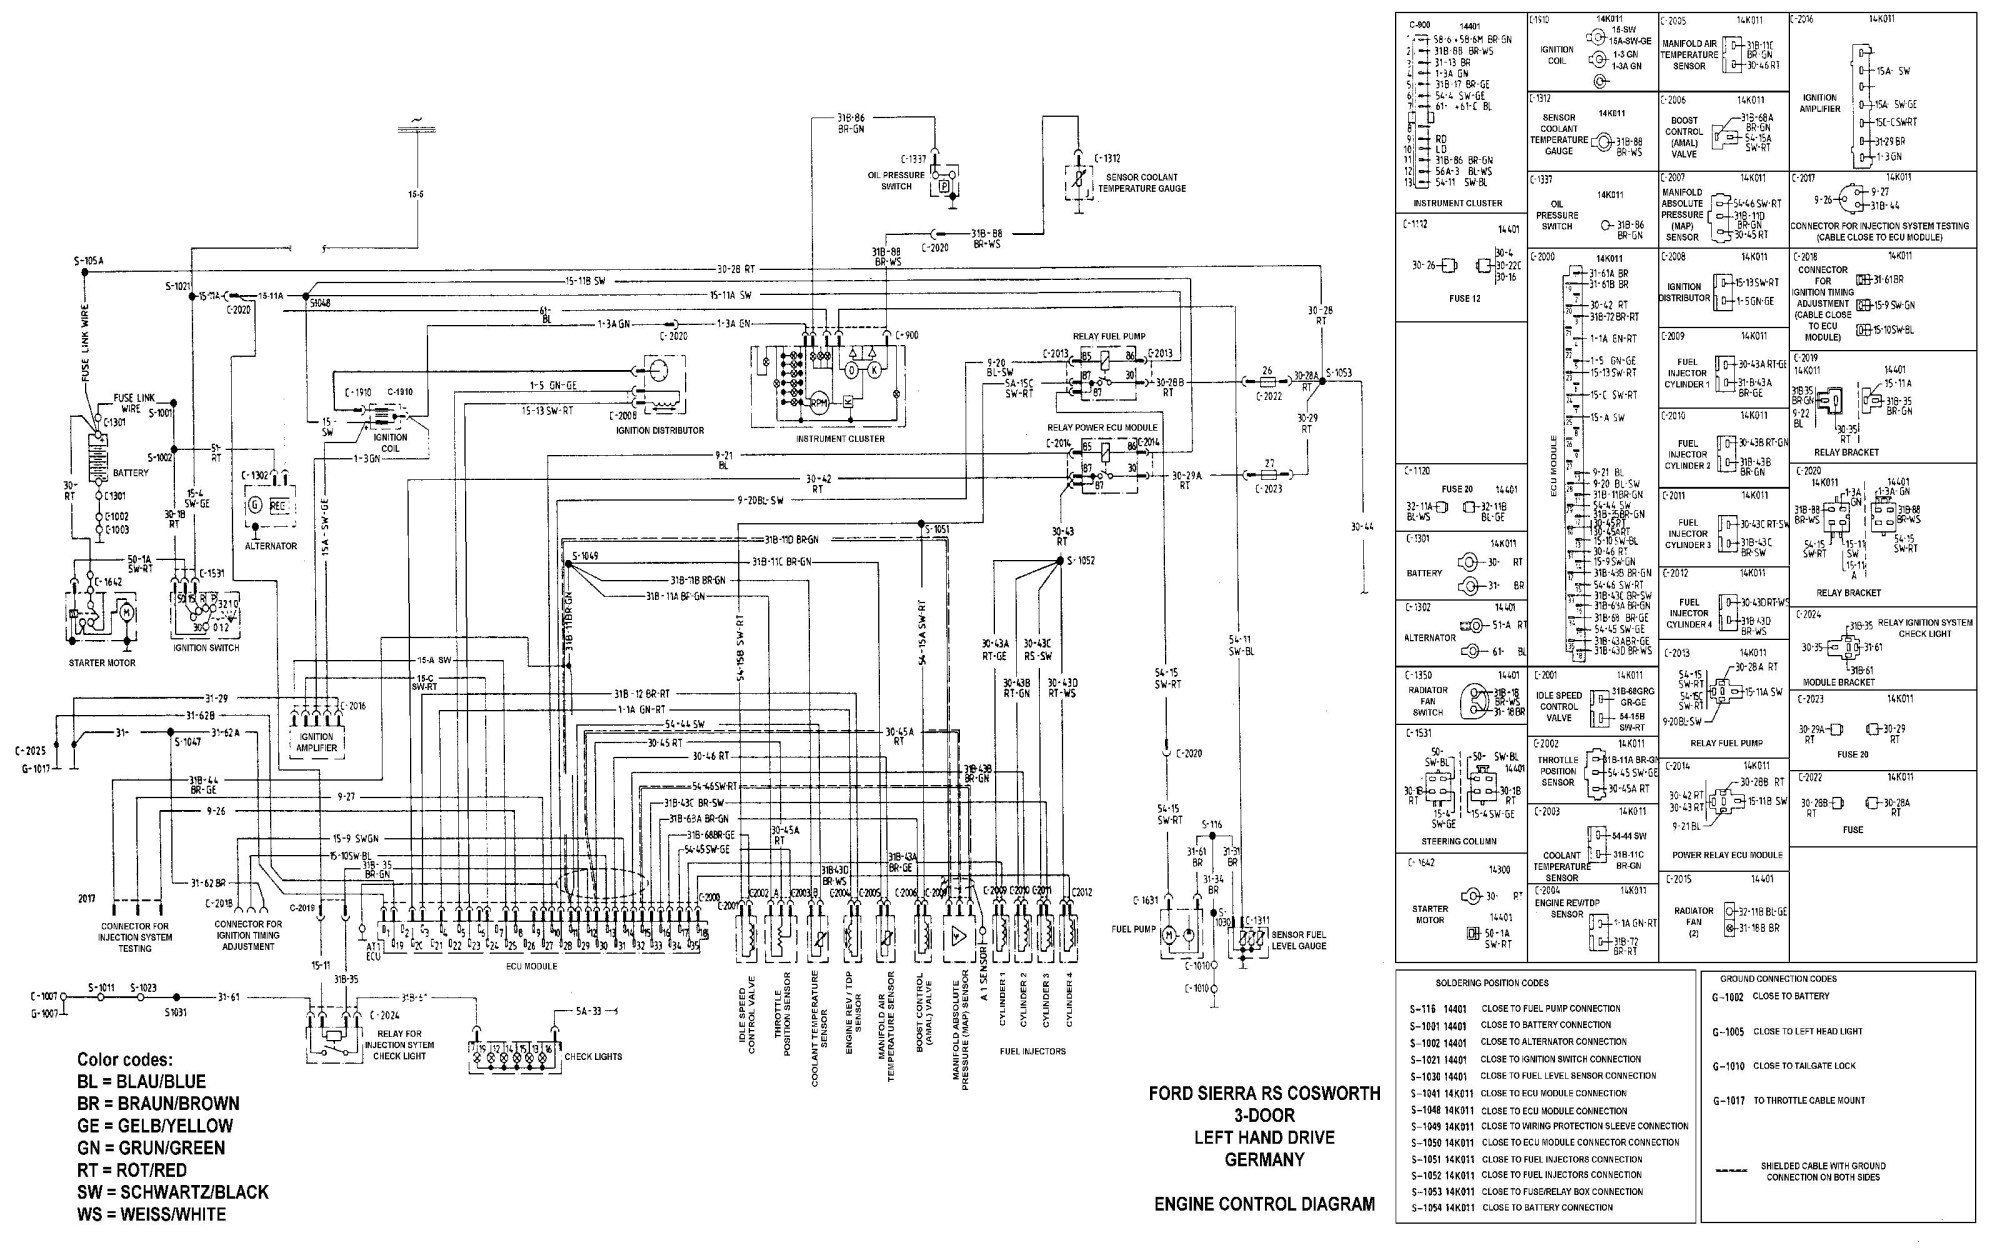 hight resolution of ford festiva wiring diagram wiring diagram 1998 ford festiva radio wiring diagram 1998 ford festiva wiring diagram